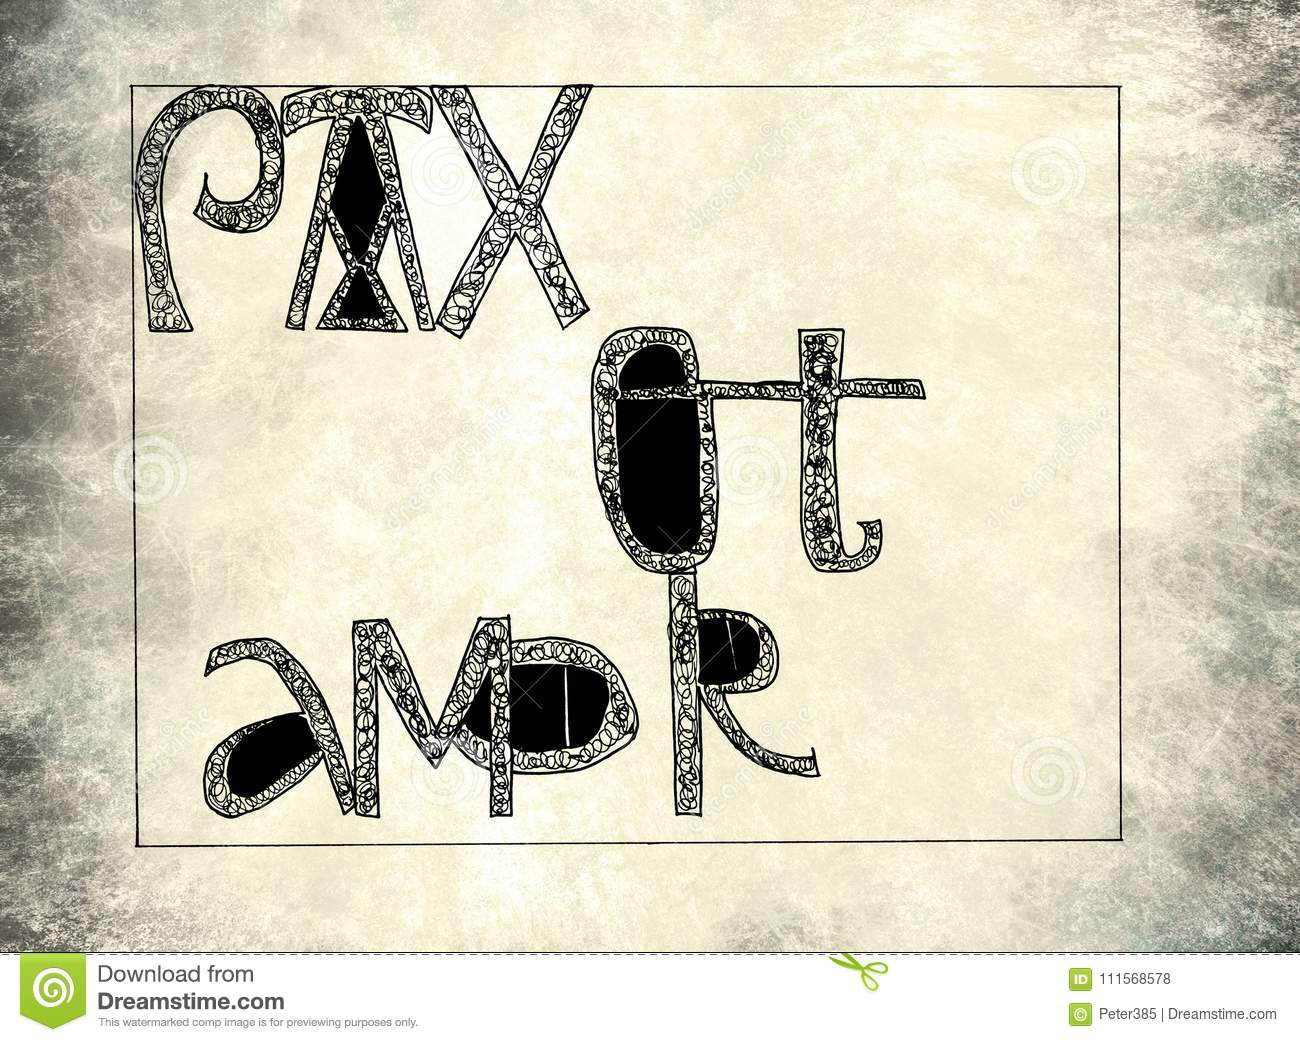 Download Pax et amor stock illustration. Illustration of striped - 111568578